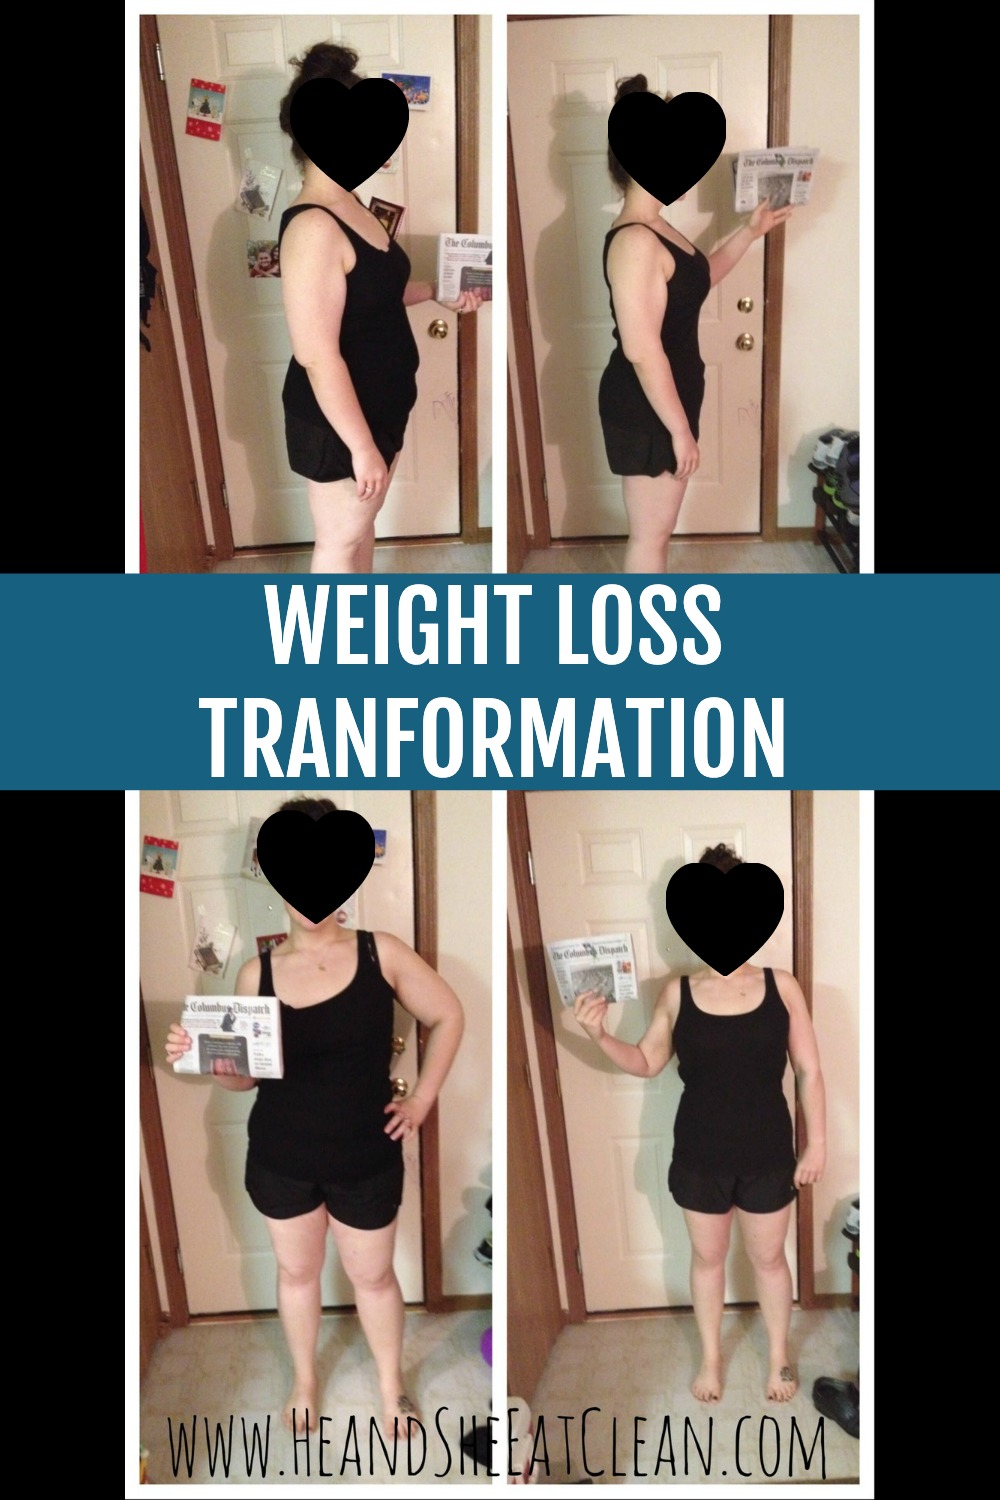 female weight loss transformation photo collage